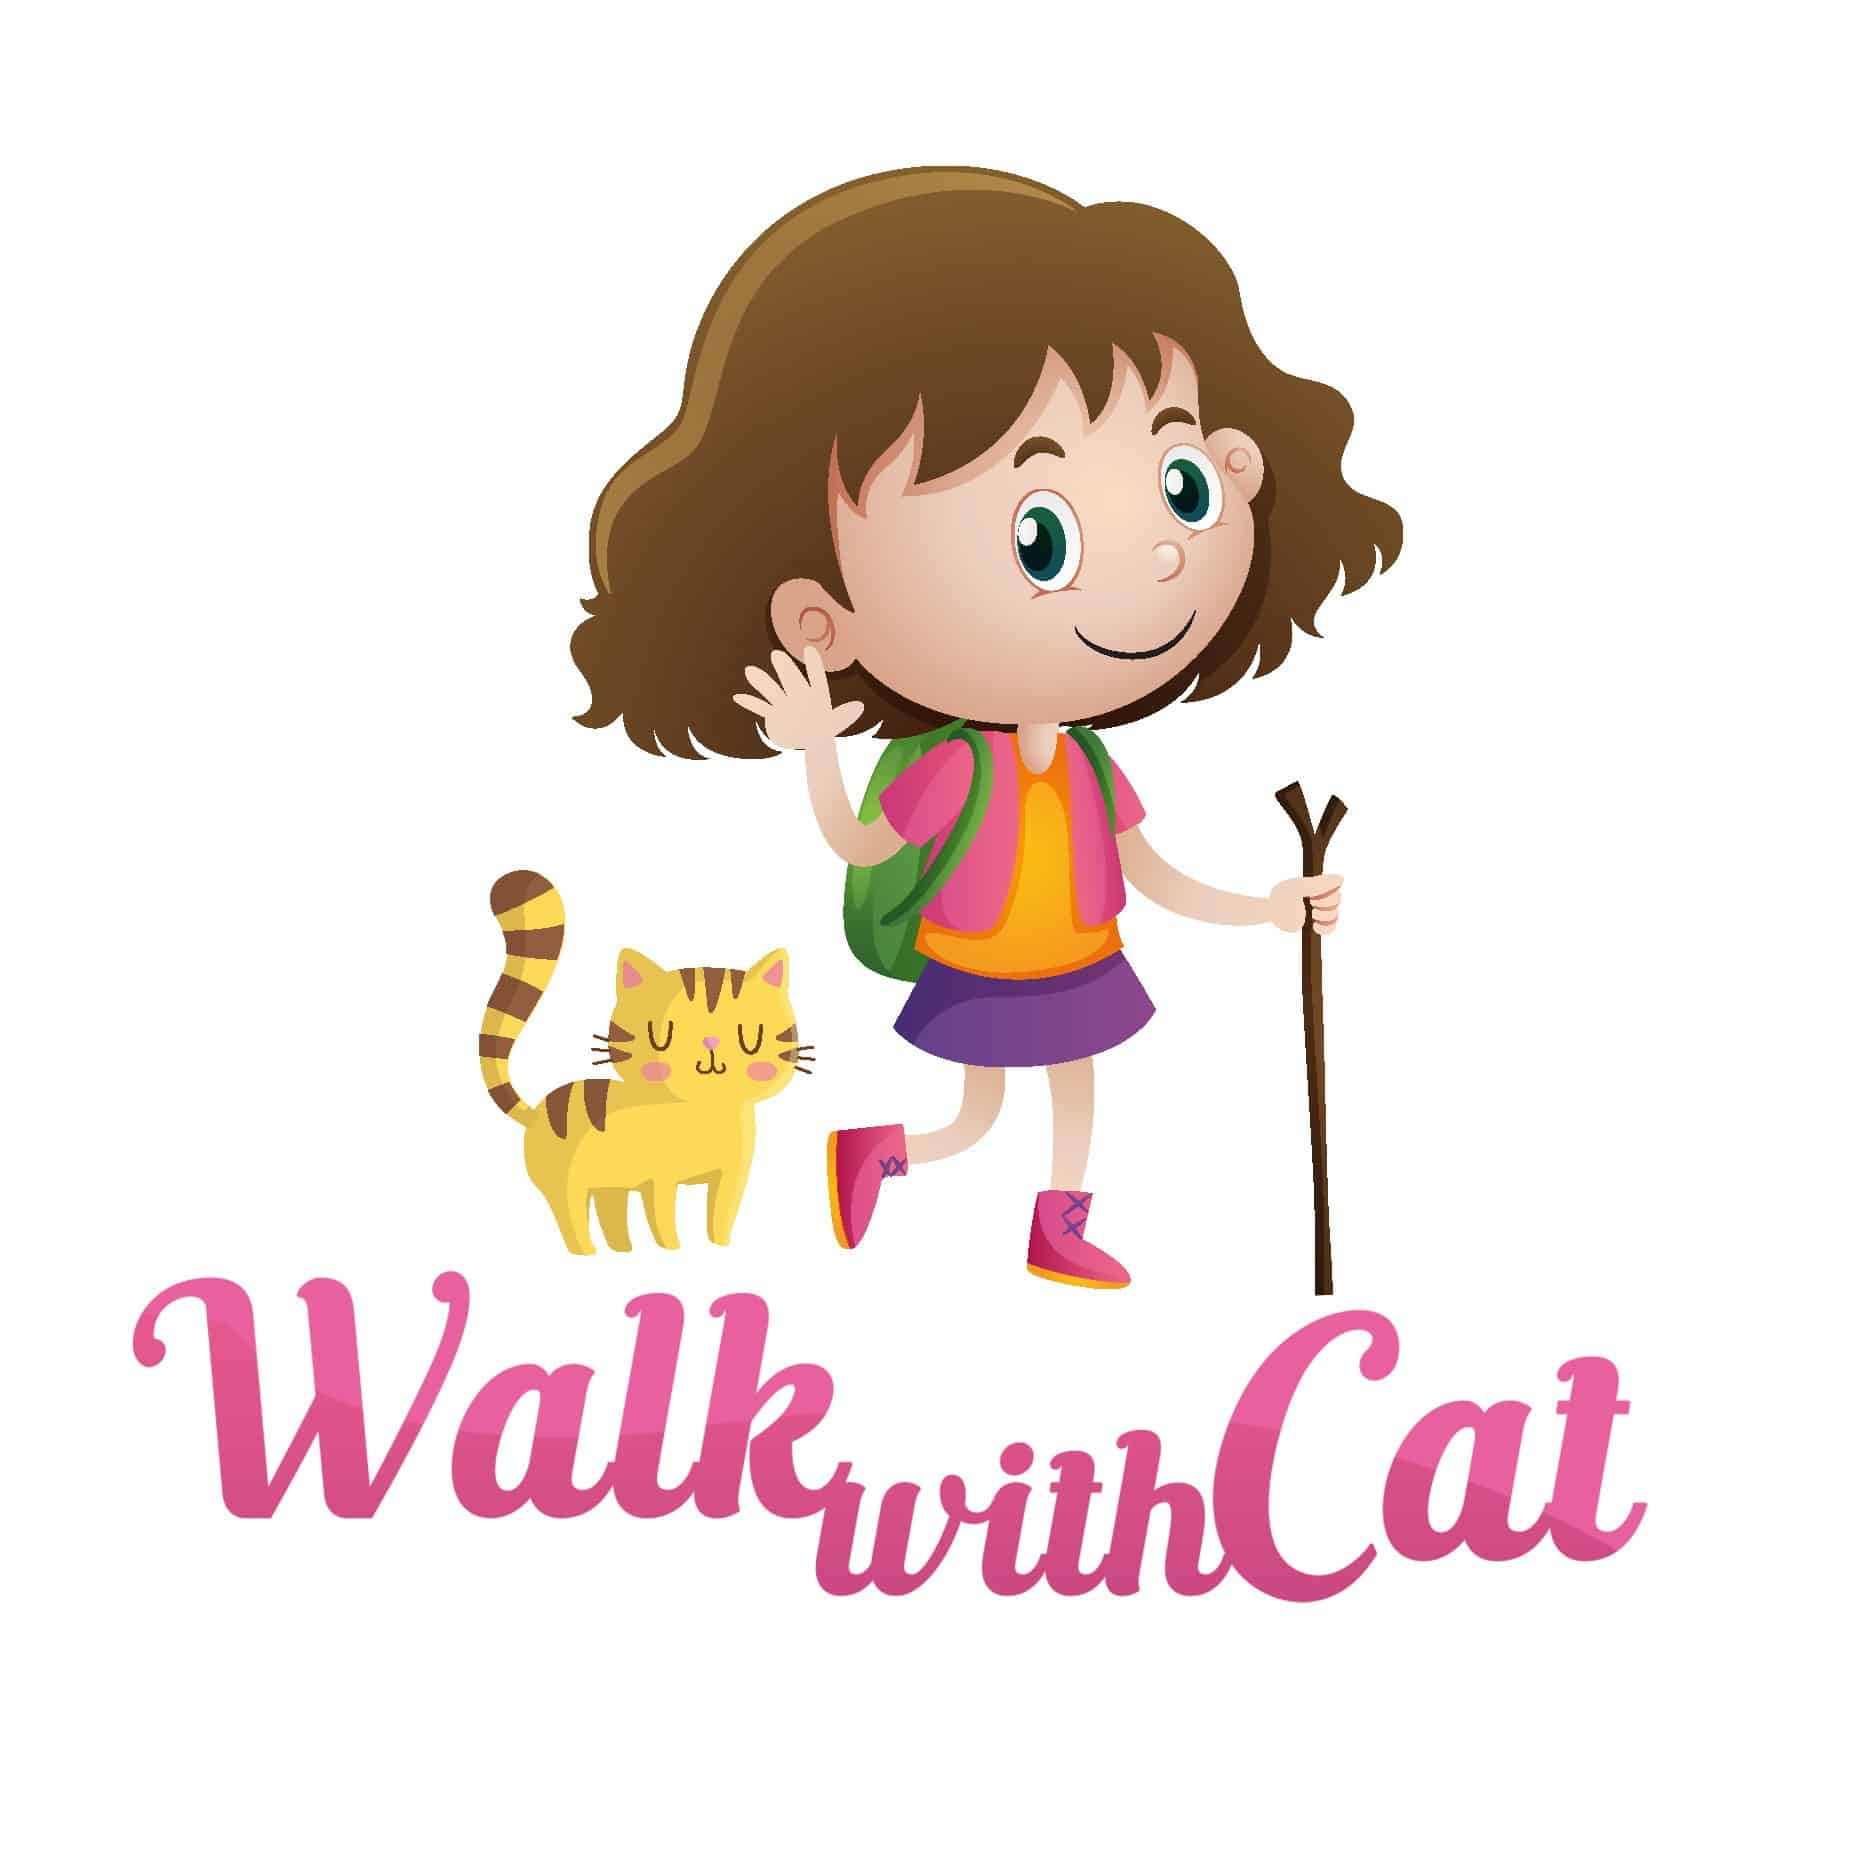 Welcome To Walk with Cat!